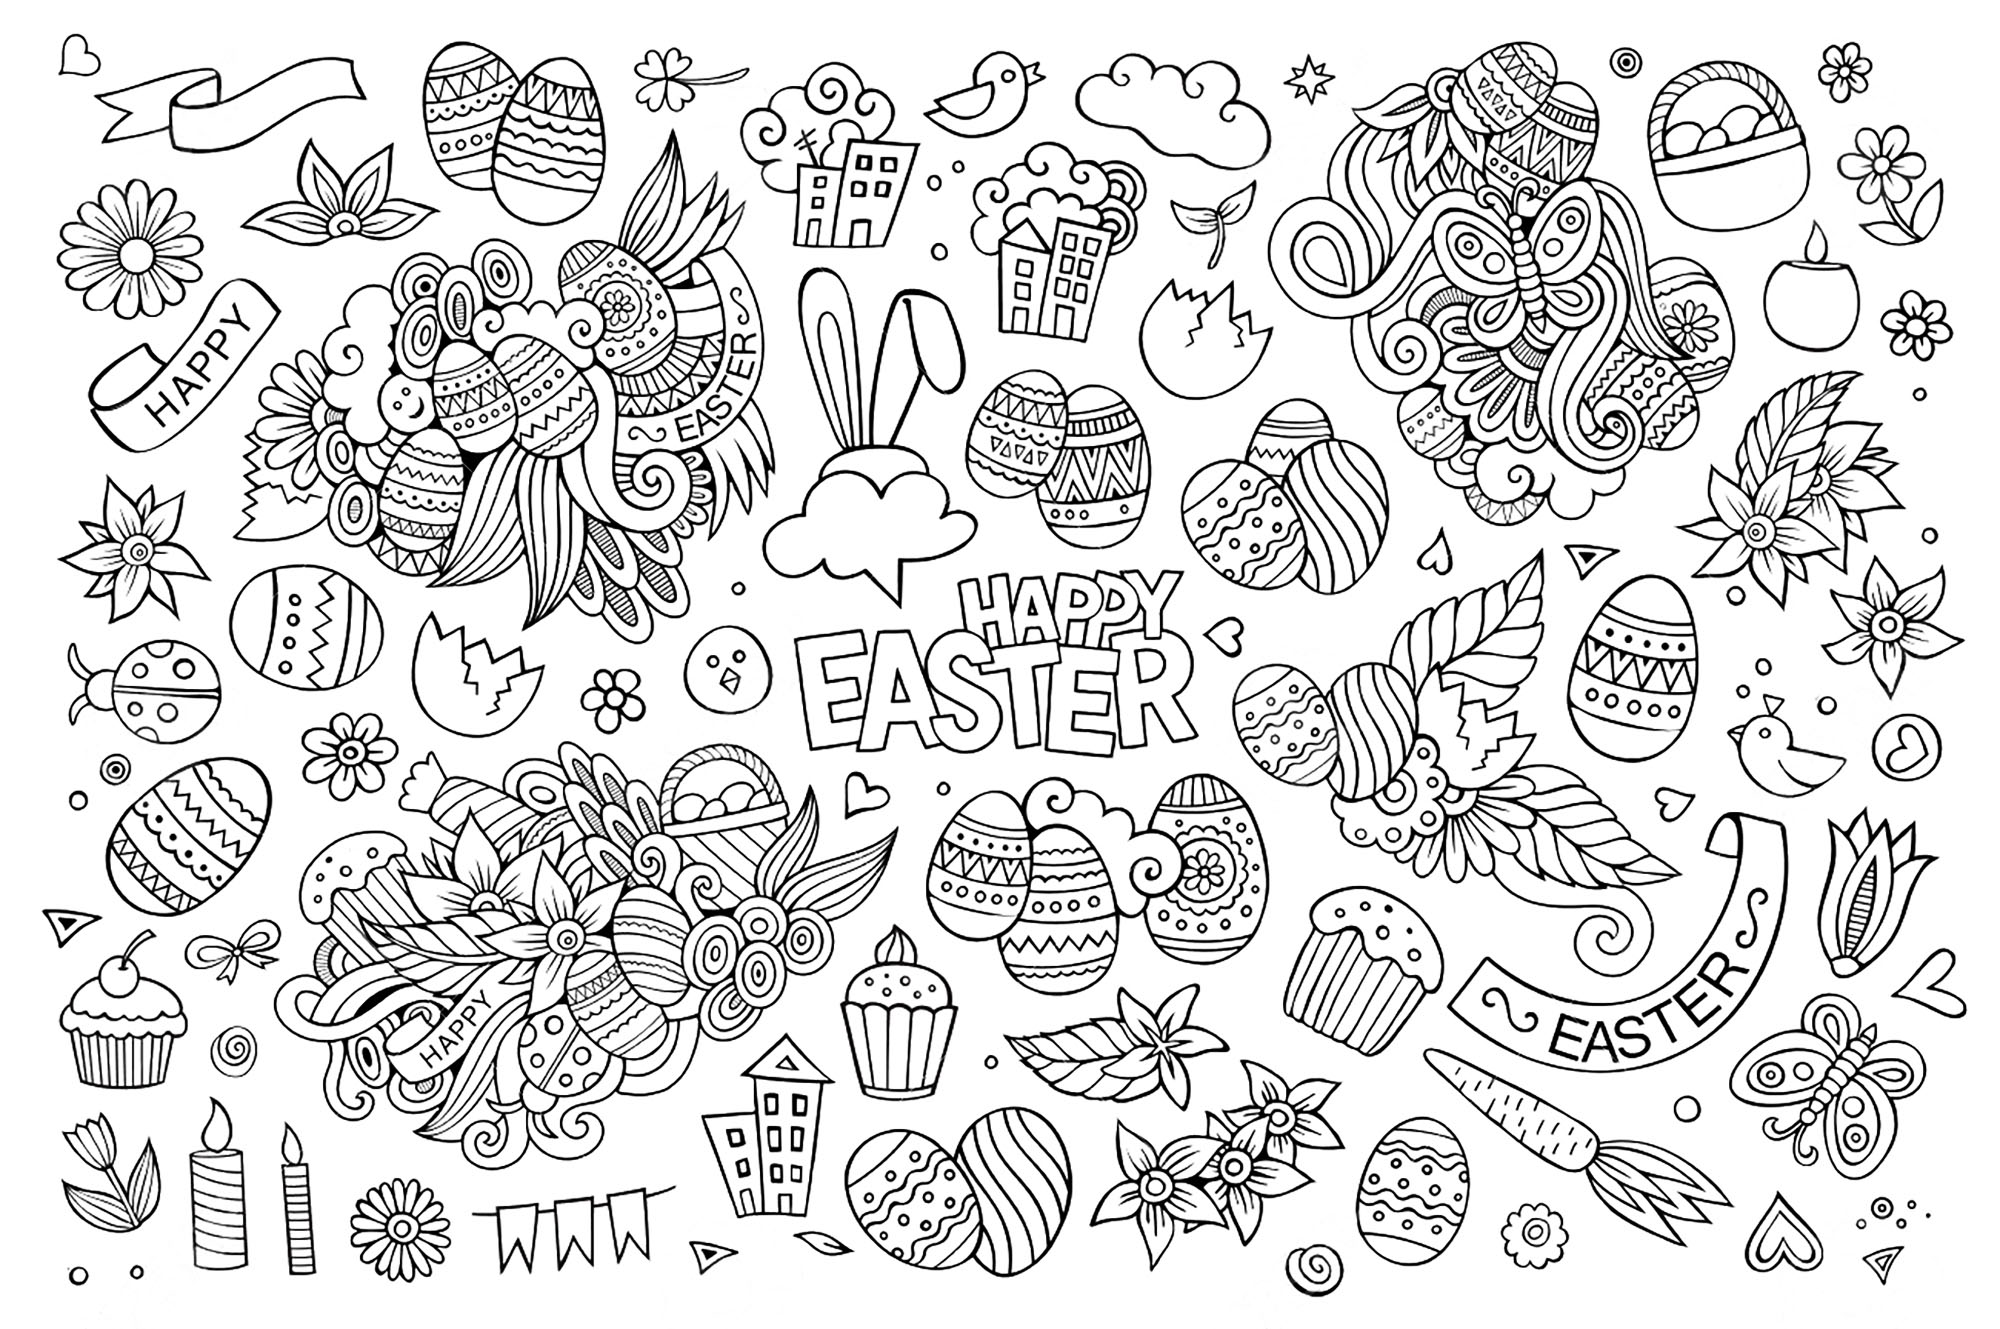 Easter hand drawn funny symbols and objects : eggs, cakes, flowers ...